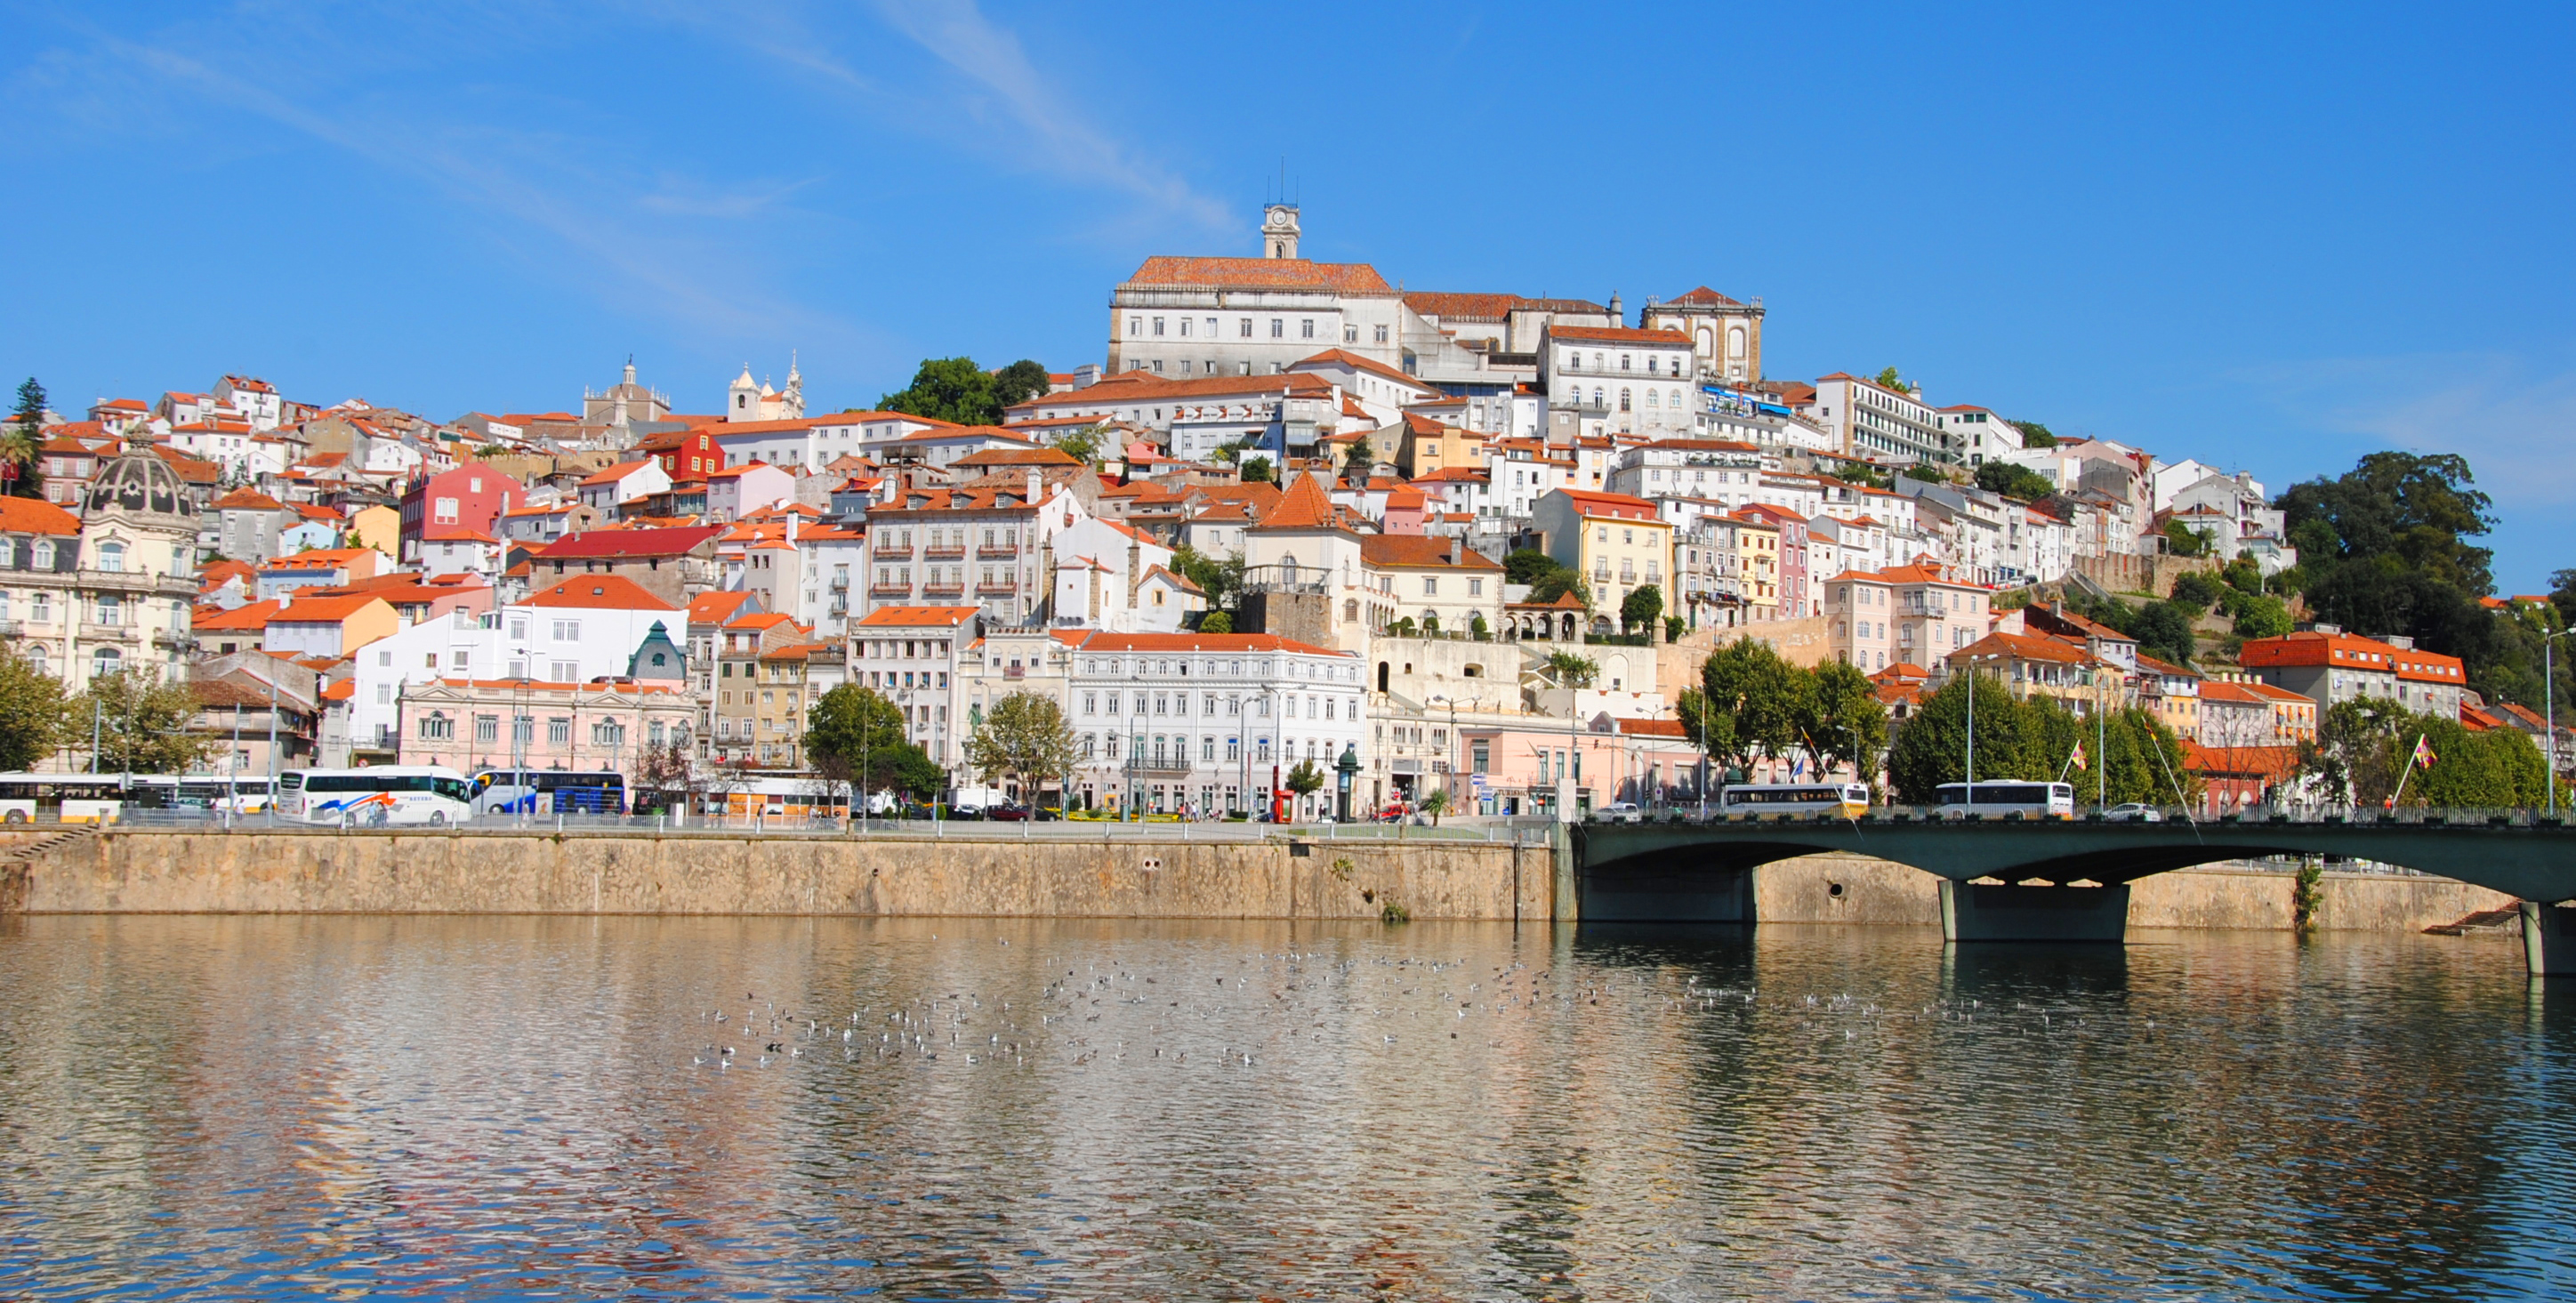 Private Transfer to/from Coimbra/Lisbon